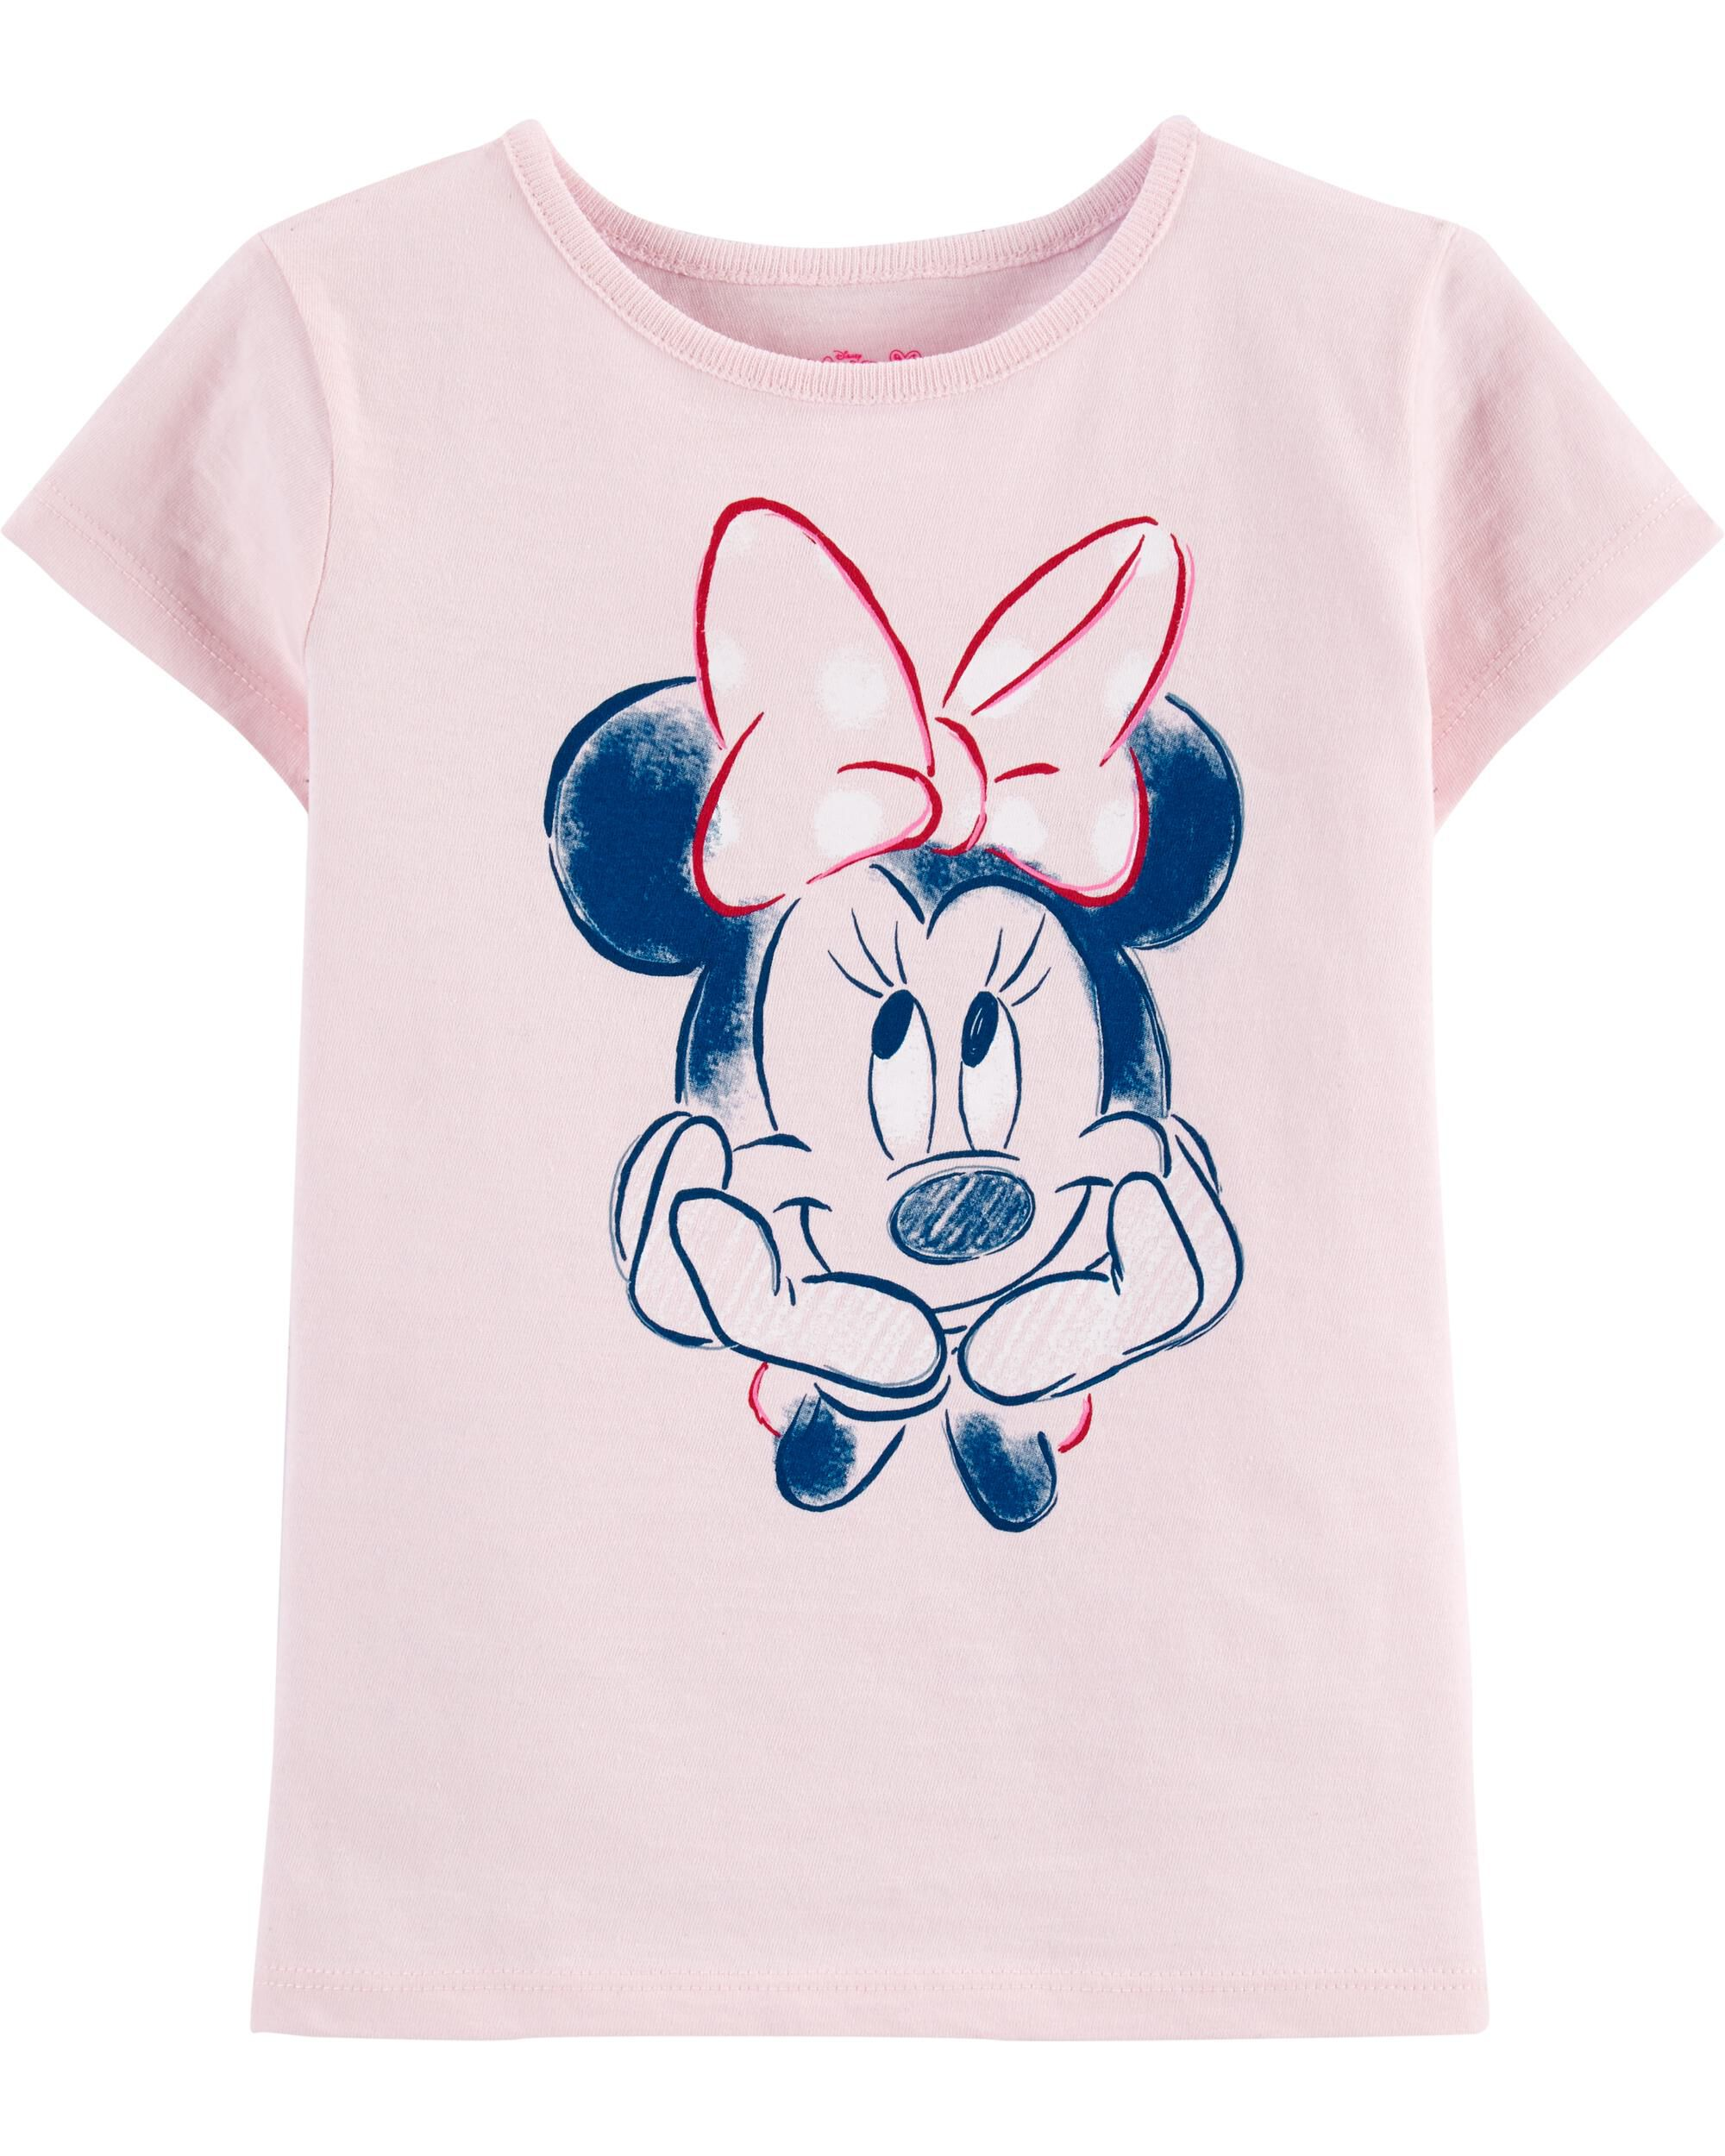 OFFICIALLY LICENCED TOP OFFICIAL KIDS CHILDRENS GIRLS MINNIE MOUSE T-SHIRTS